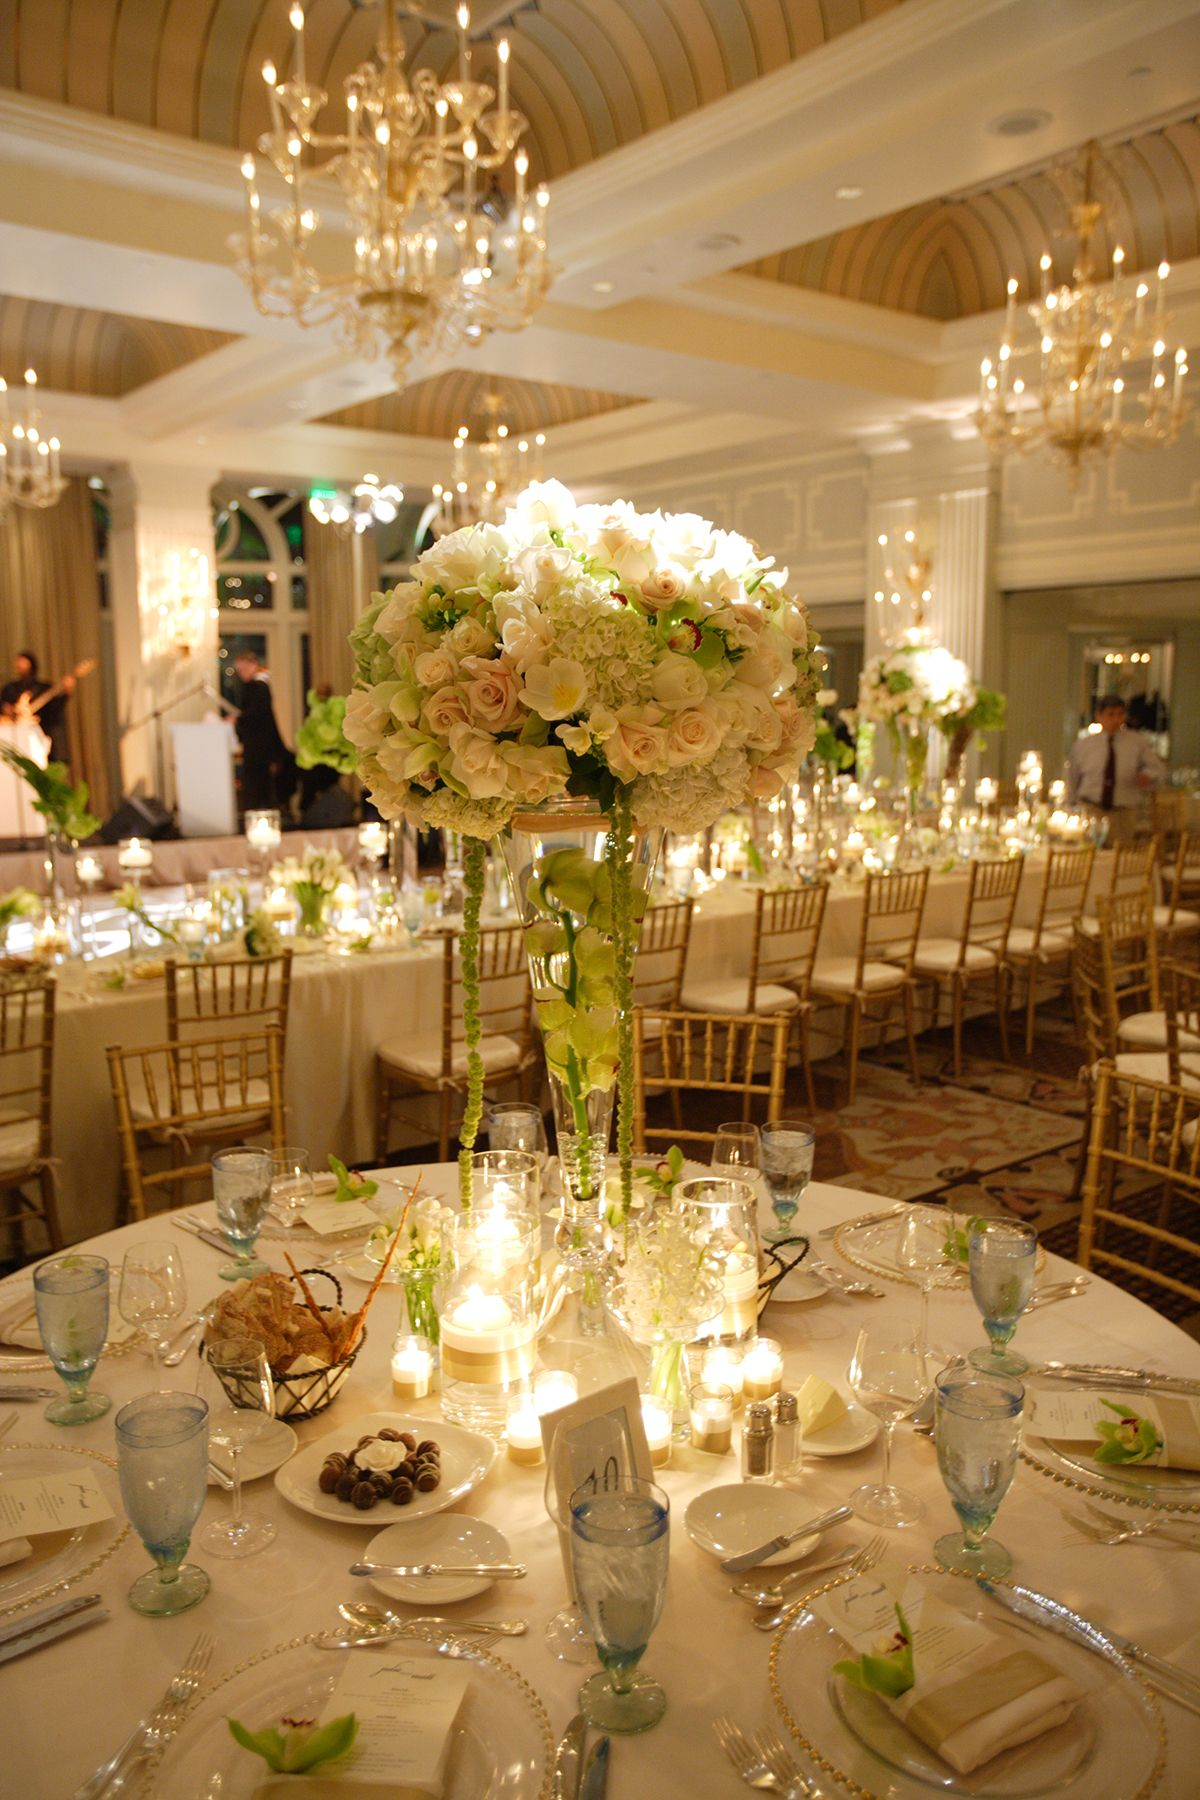 Beautiful Wedding Reception Table Setting Colonnade Ballroom, Luxury Beach Hotel